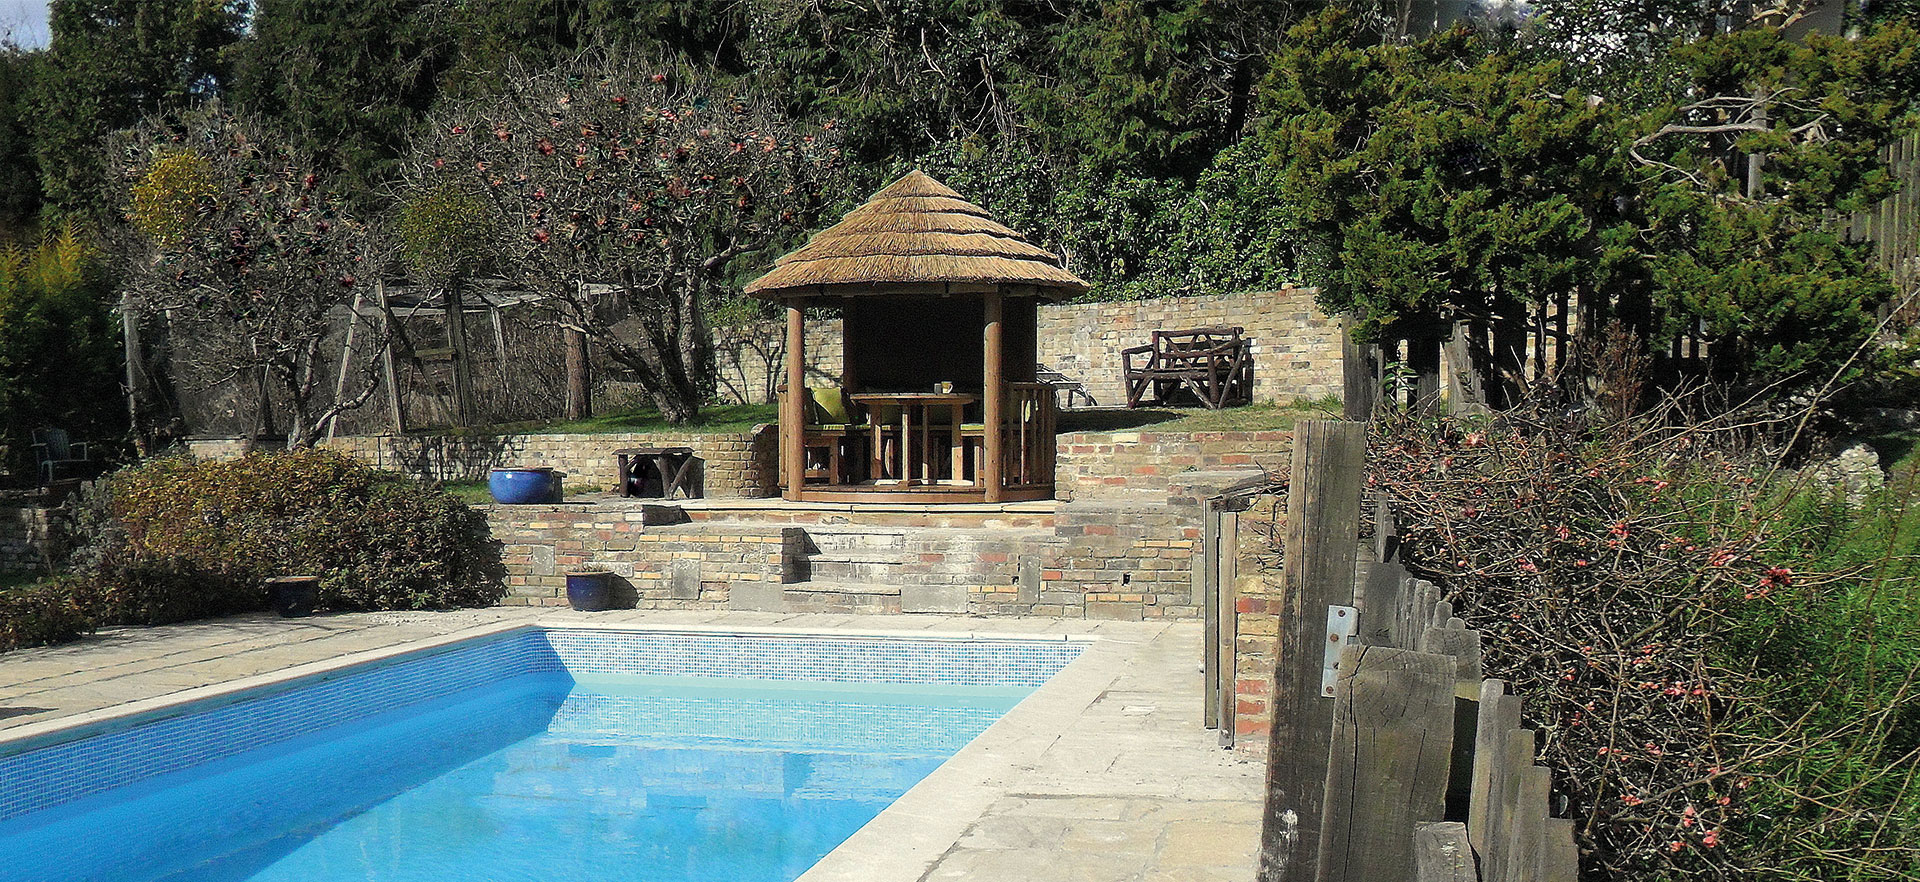 2.5 metre gazebo overlooking outdoor swimming pool